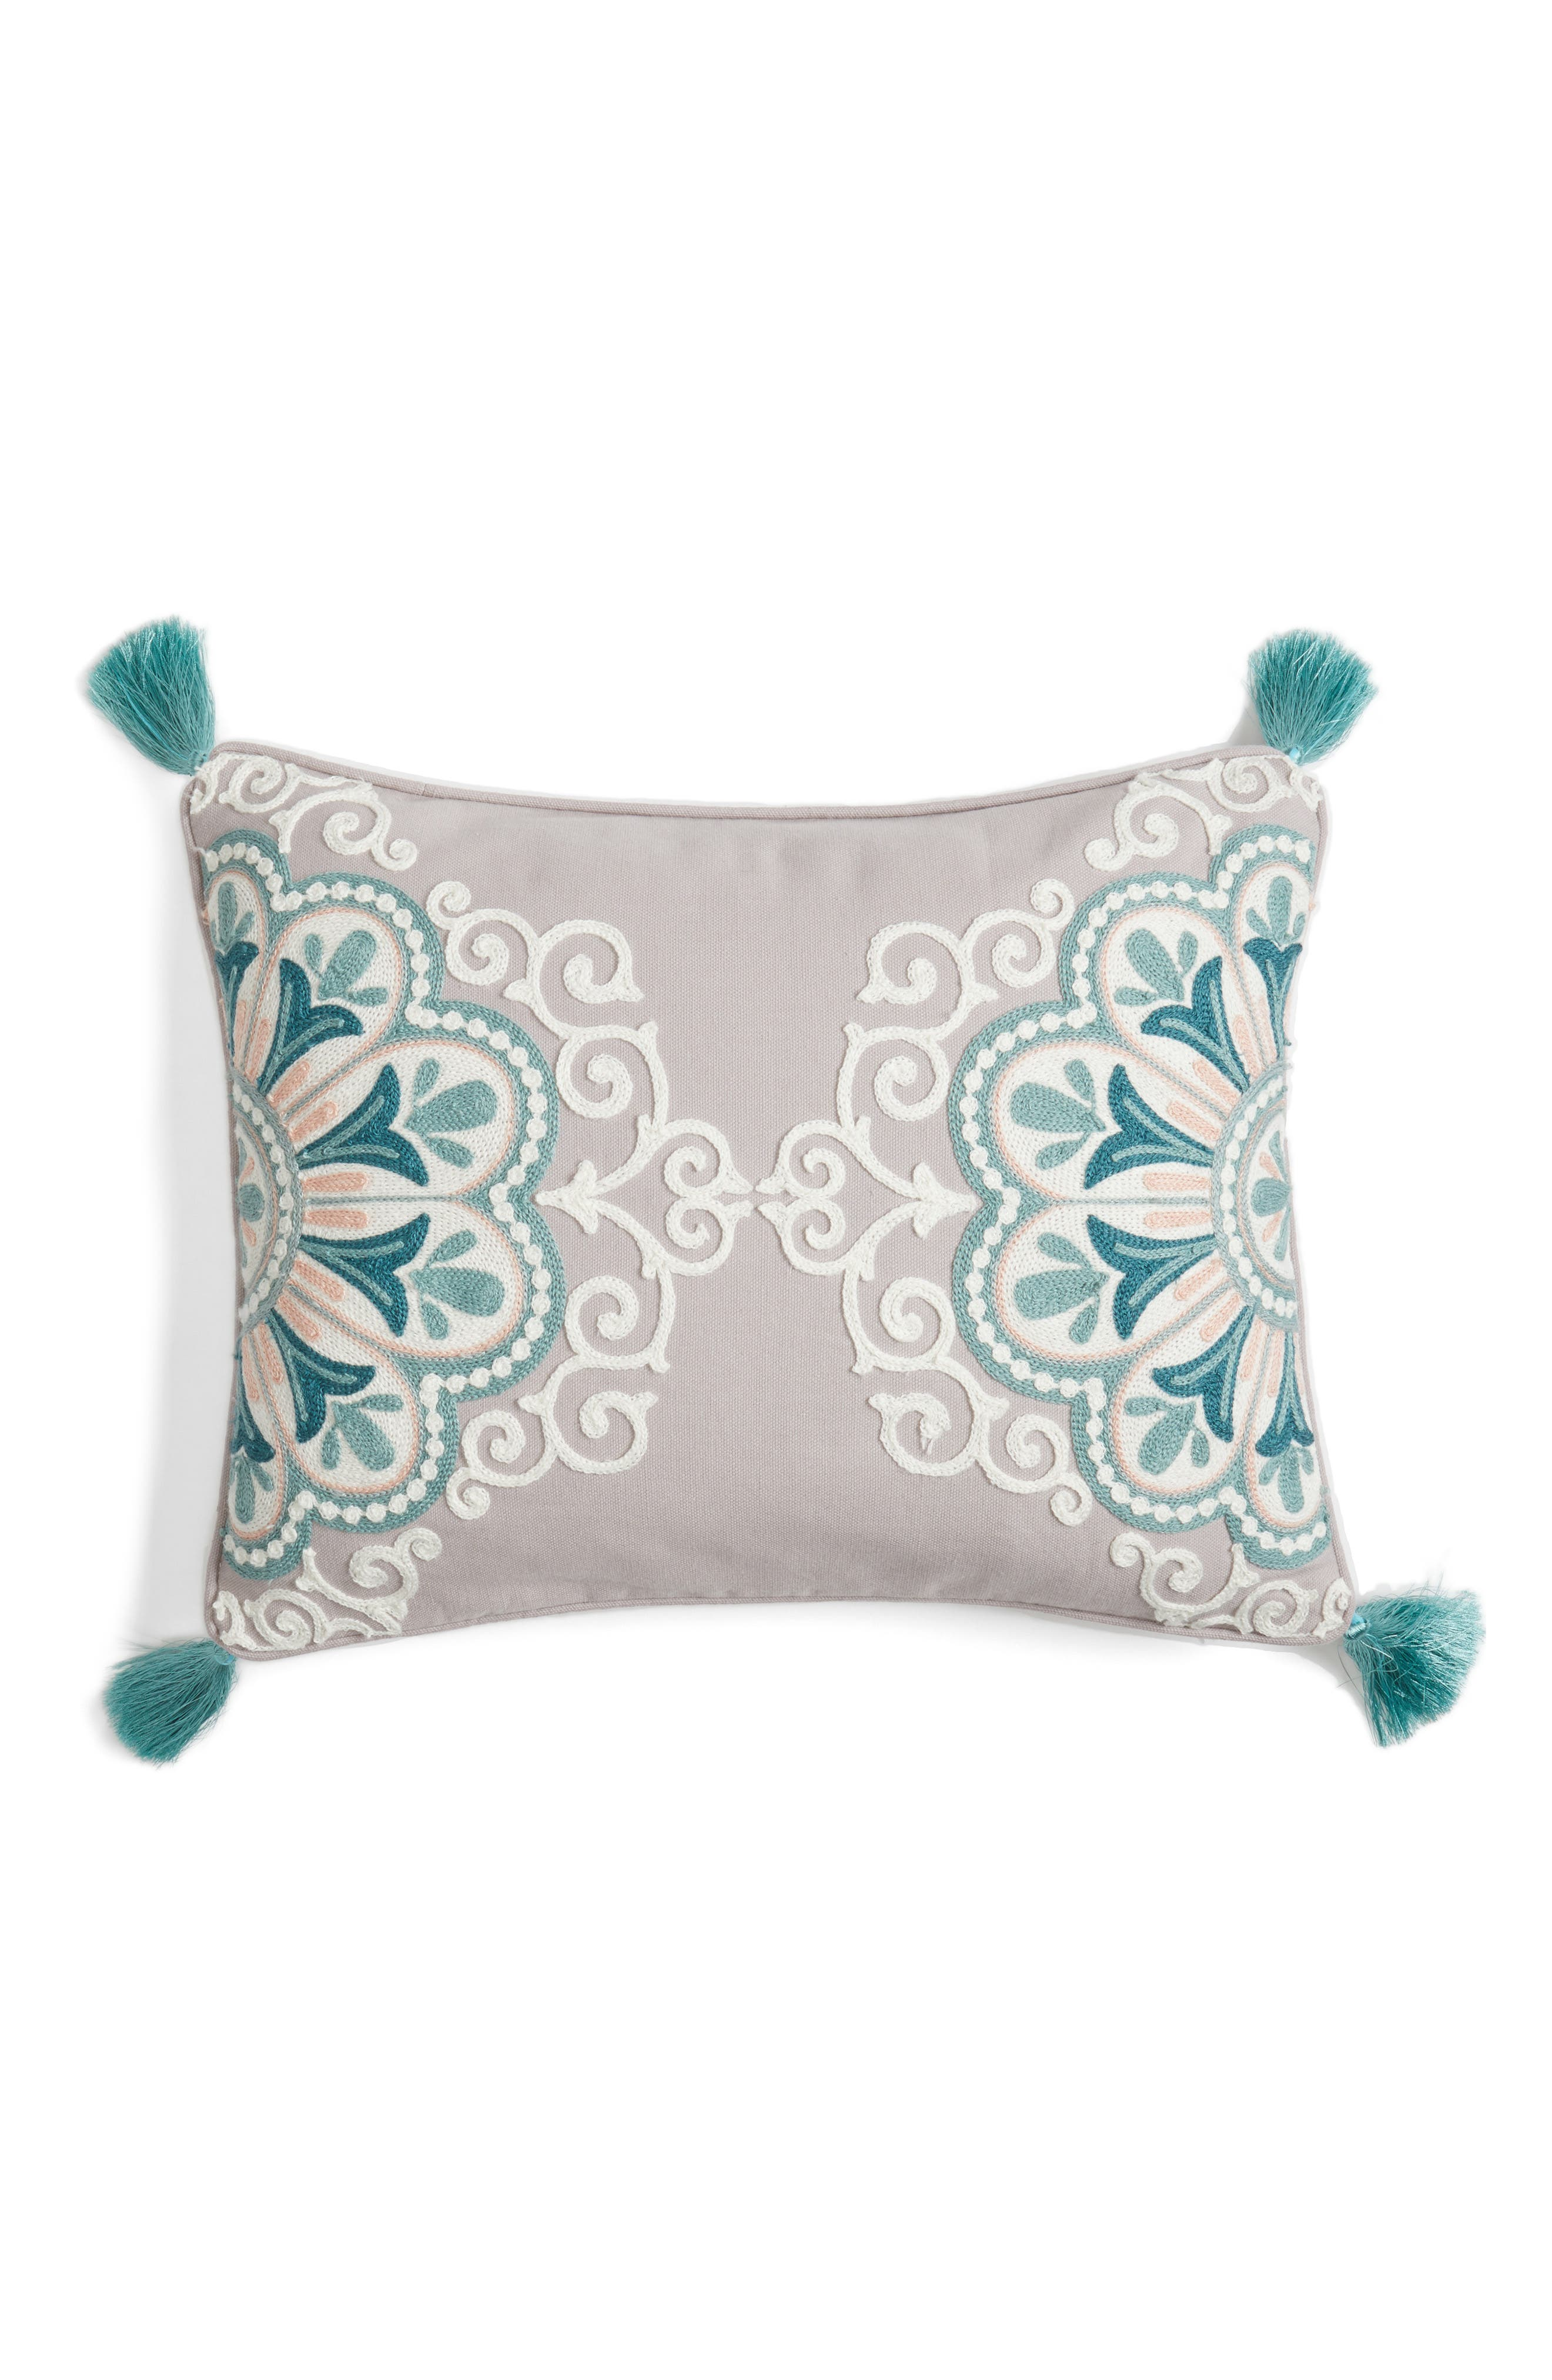 Addie Embroidered Tassel Pillow,                             Main thumbnail 1, color,                             020